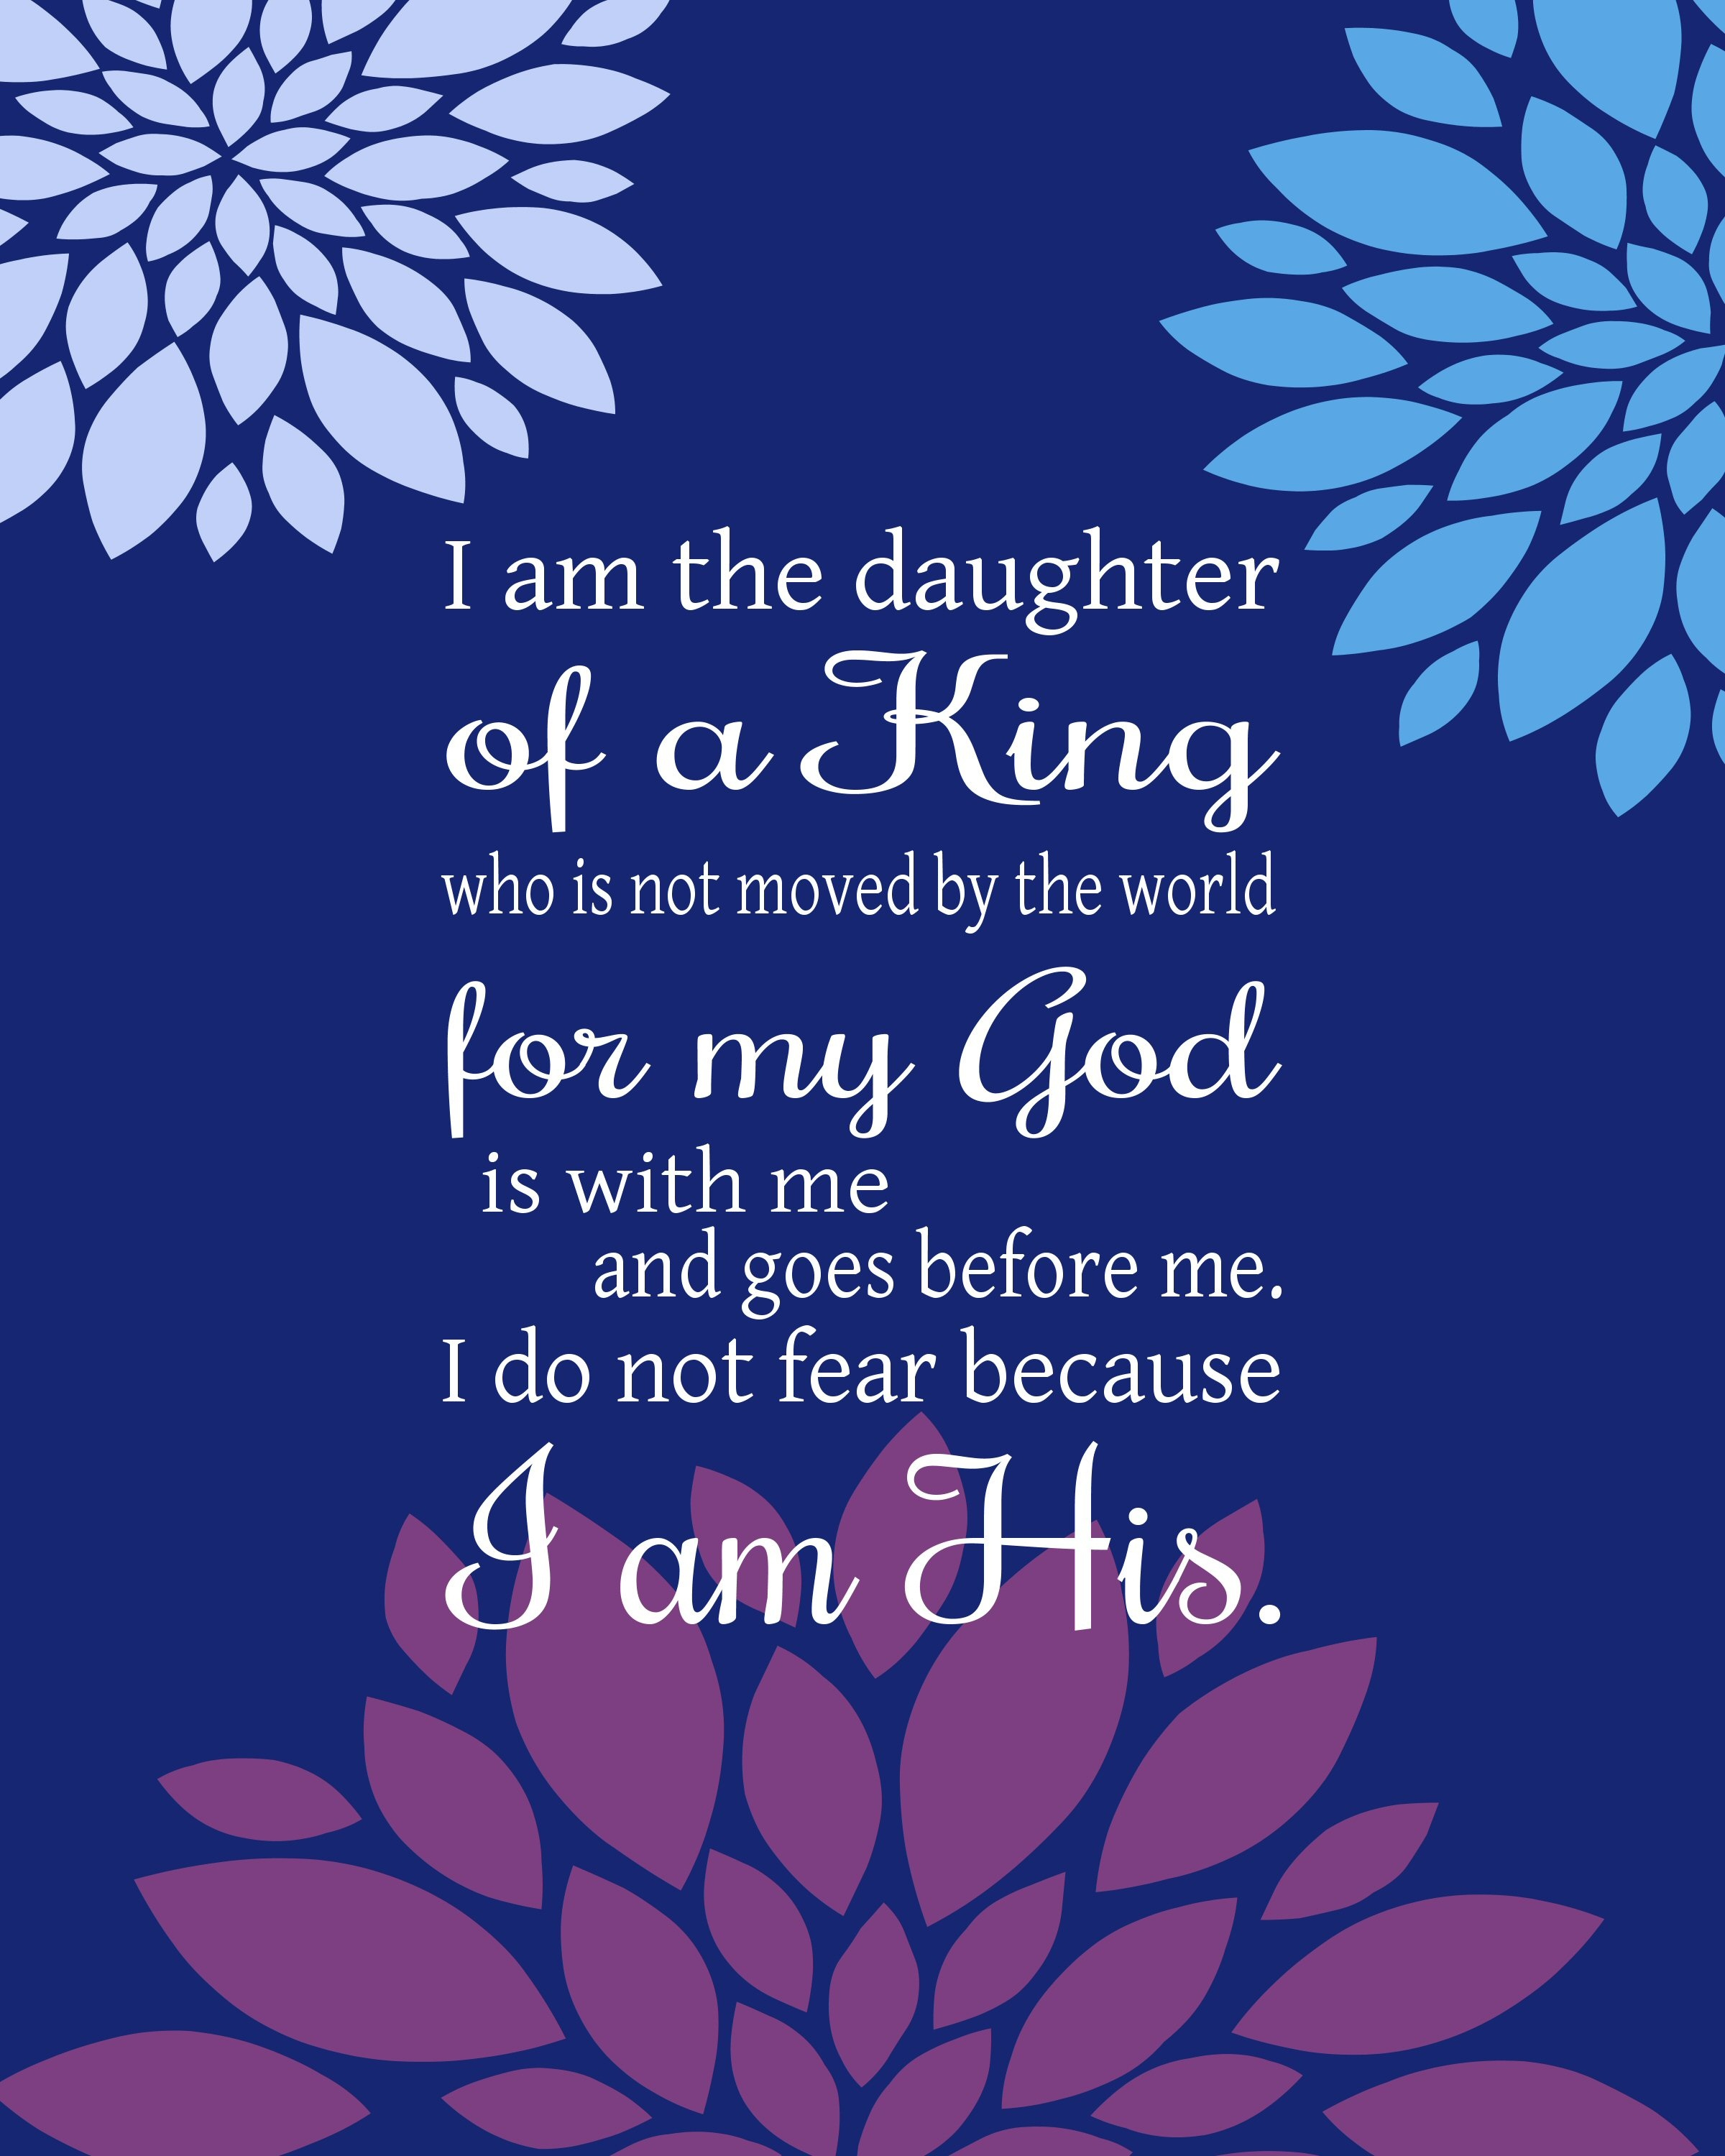 Printschristine, Inc. Personalized Gifts - Free Printable Girls - Free Printable Christian Art